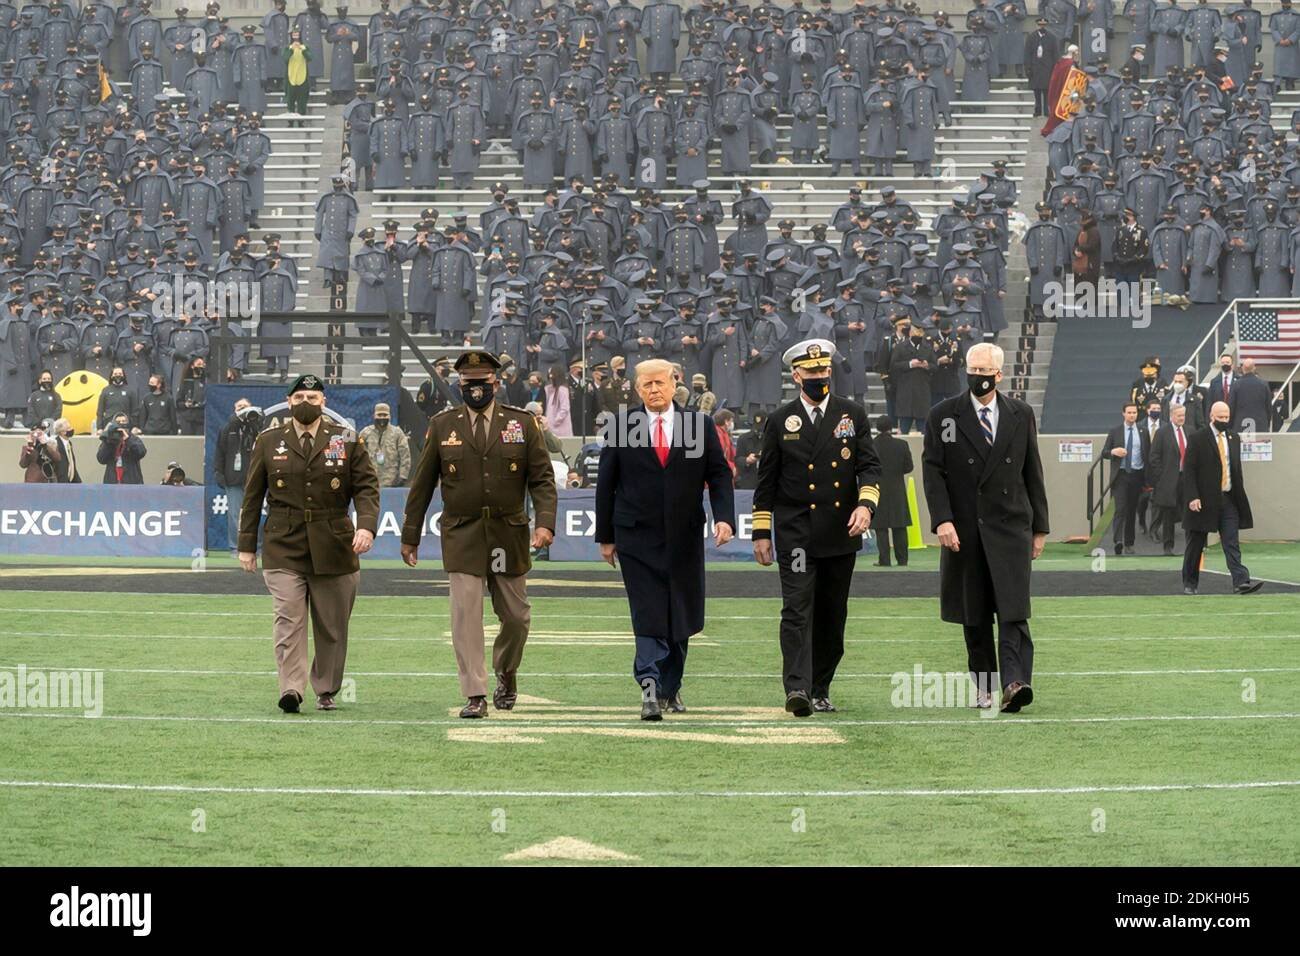 U.S. President Donald Trump walks out for the coin toss to start the 121st Army-Navy football game at Michie Stadium December 12, 2019 in West Point, New York. Walking alongside the president are left to right: Chairman of the Joint Chiefs Gen. Mark Milley, Lt. Gen. Darryl Williams, Superintendent of the U.S. Military Academy, Adm. Sean Buck, Superintendent of the U.S. Naval Academy and Acting Defense Secretary Christopher Miller. Stock Photo